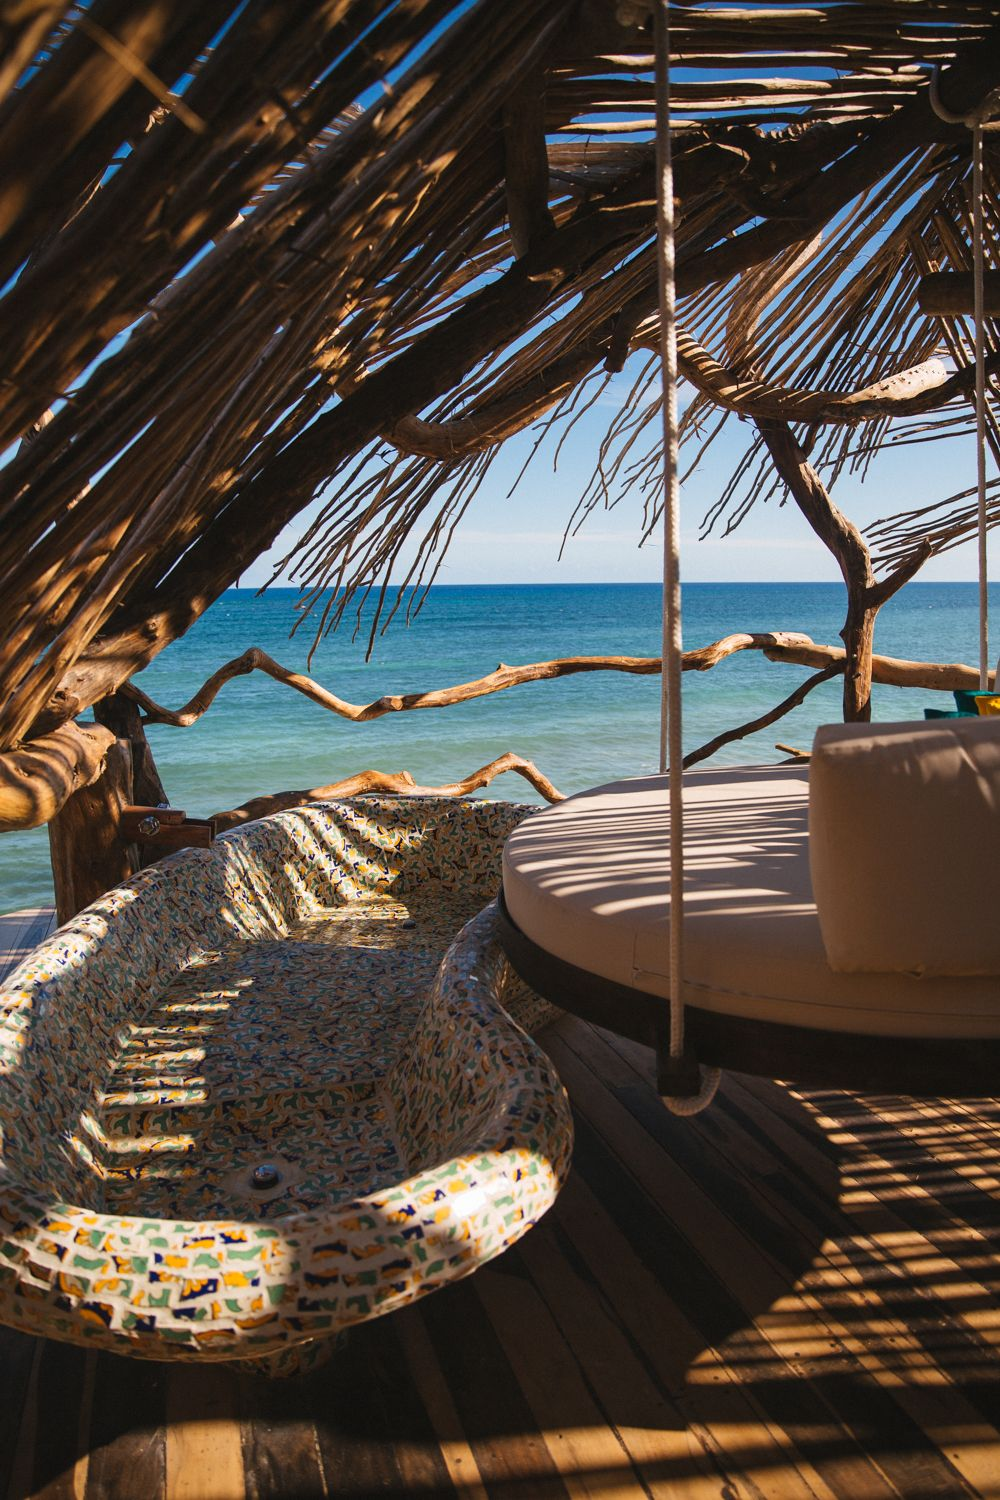 The 25 best tulum resorts ideas on pinterest tulum beach hotels mexico trips and tulum hotels